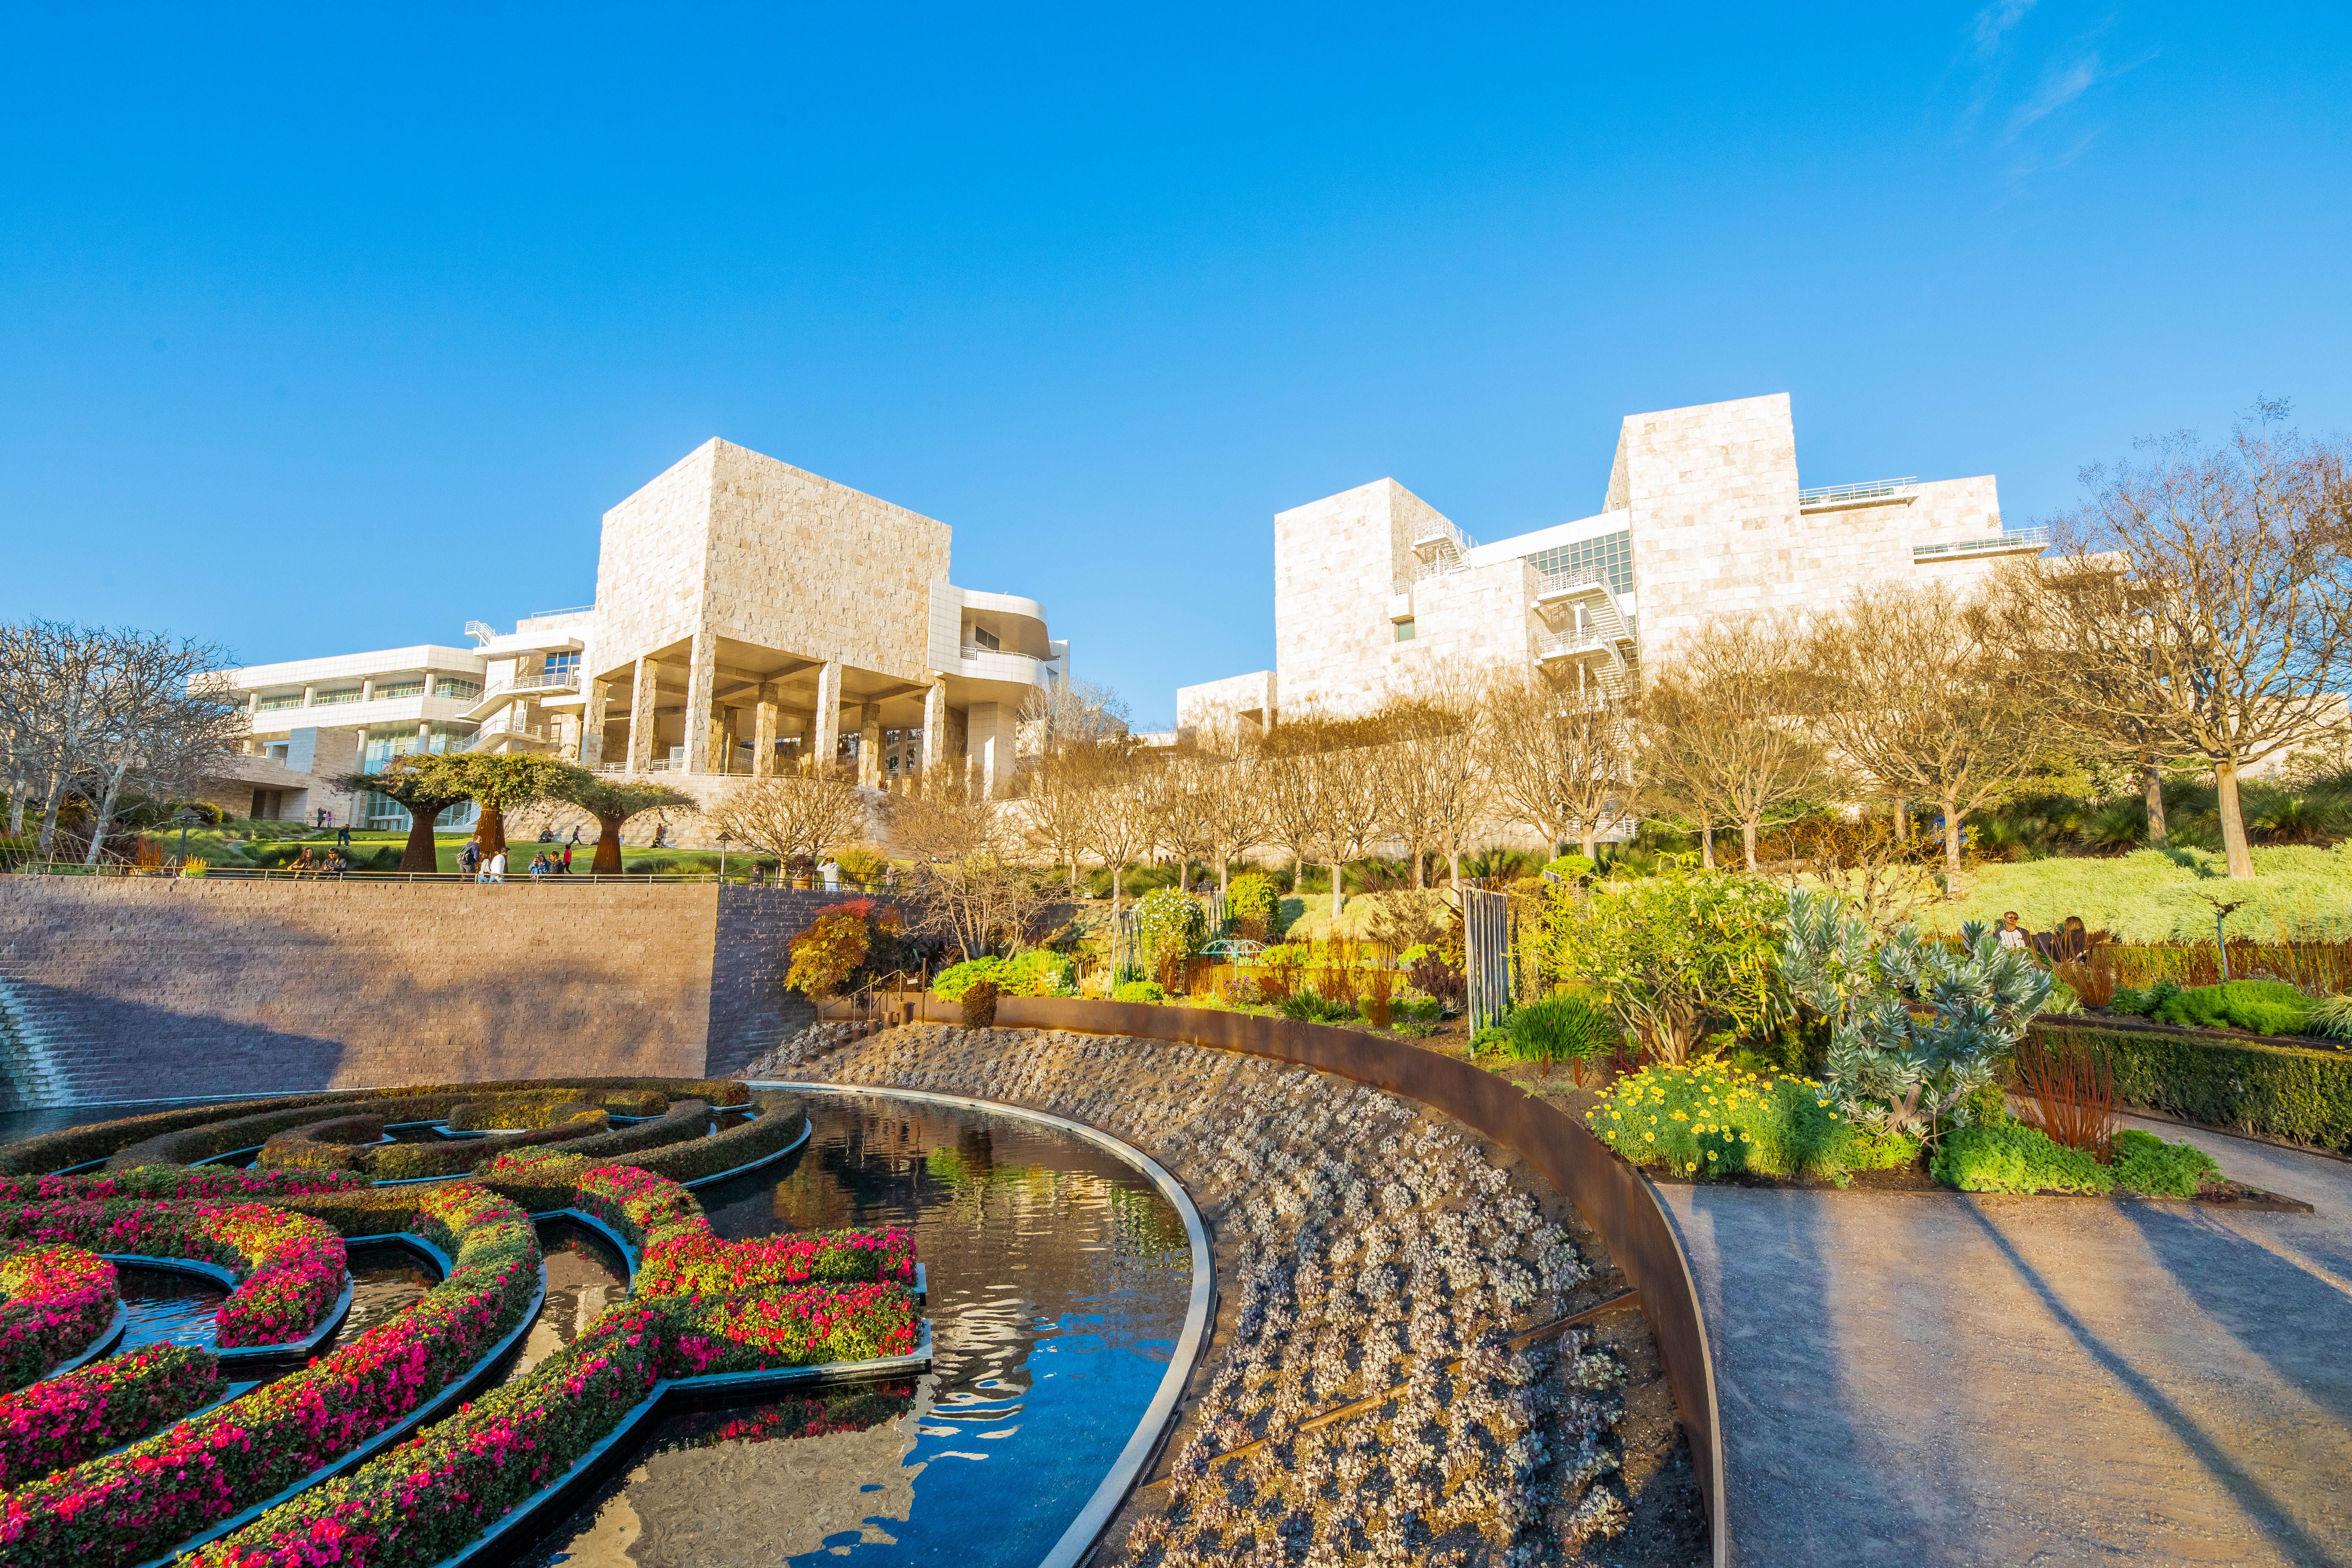 Garden at the Getty